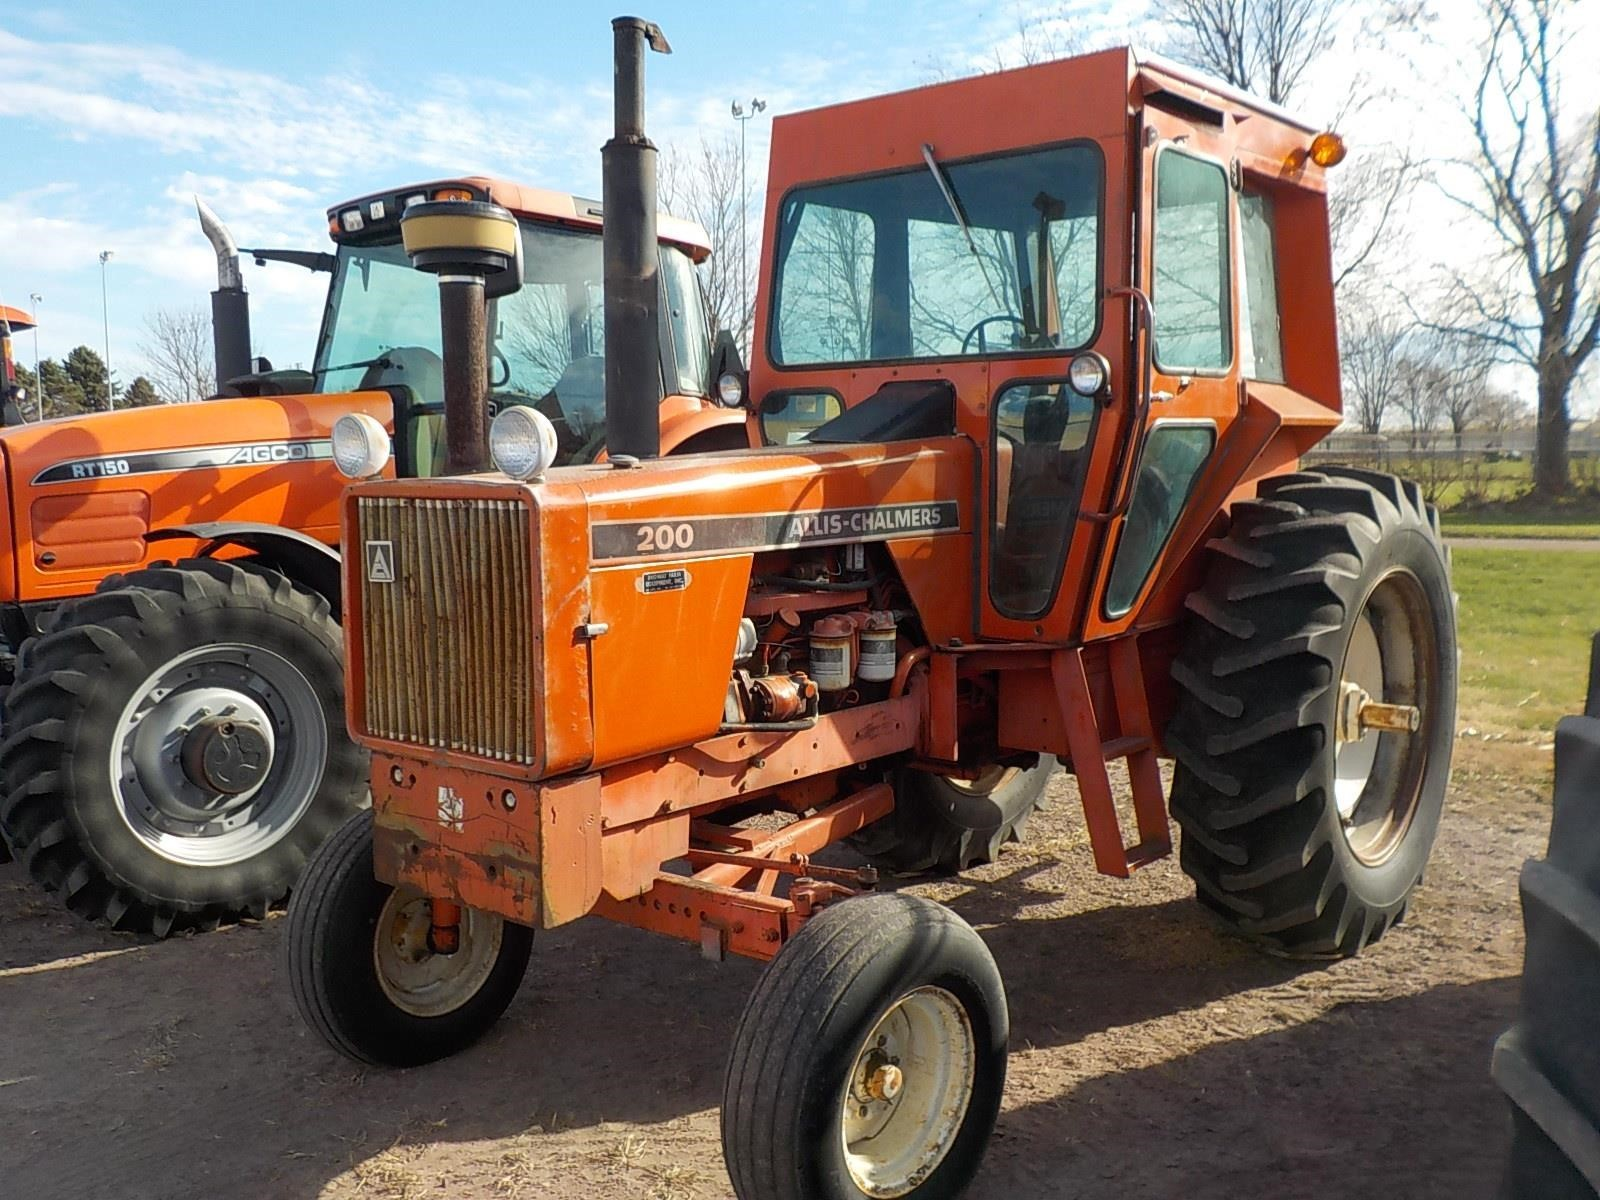 1974 Allis Chalmers 200 Tractor